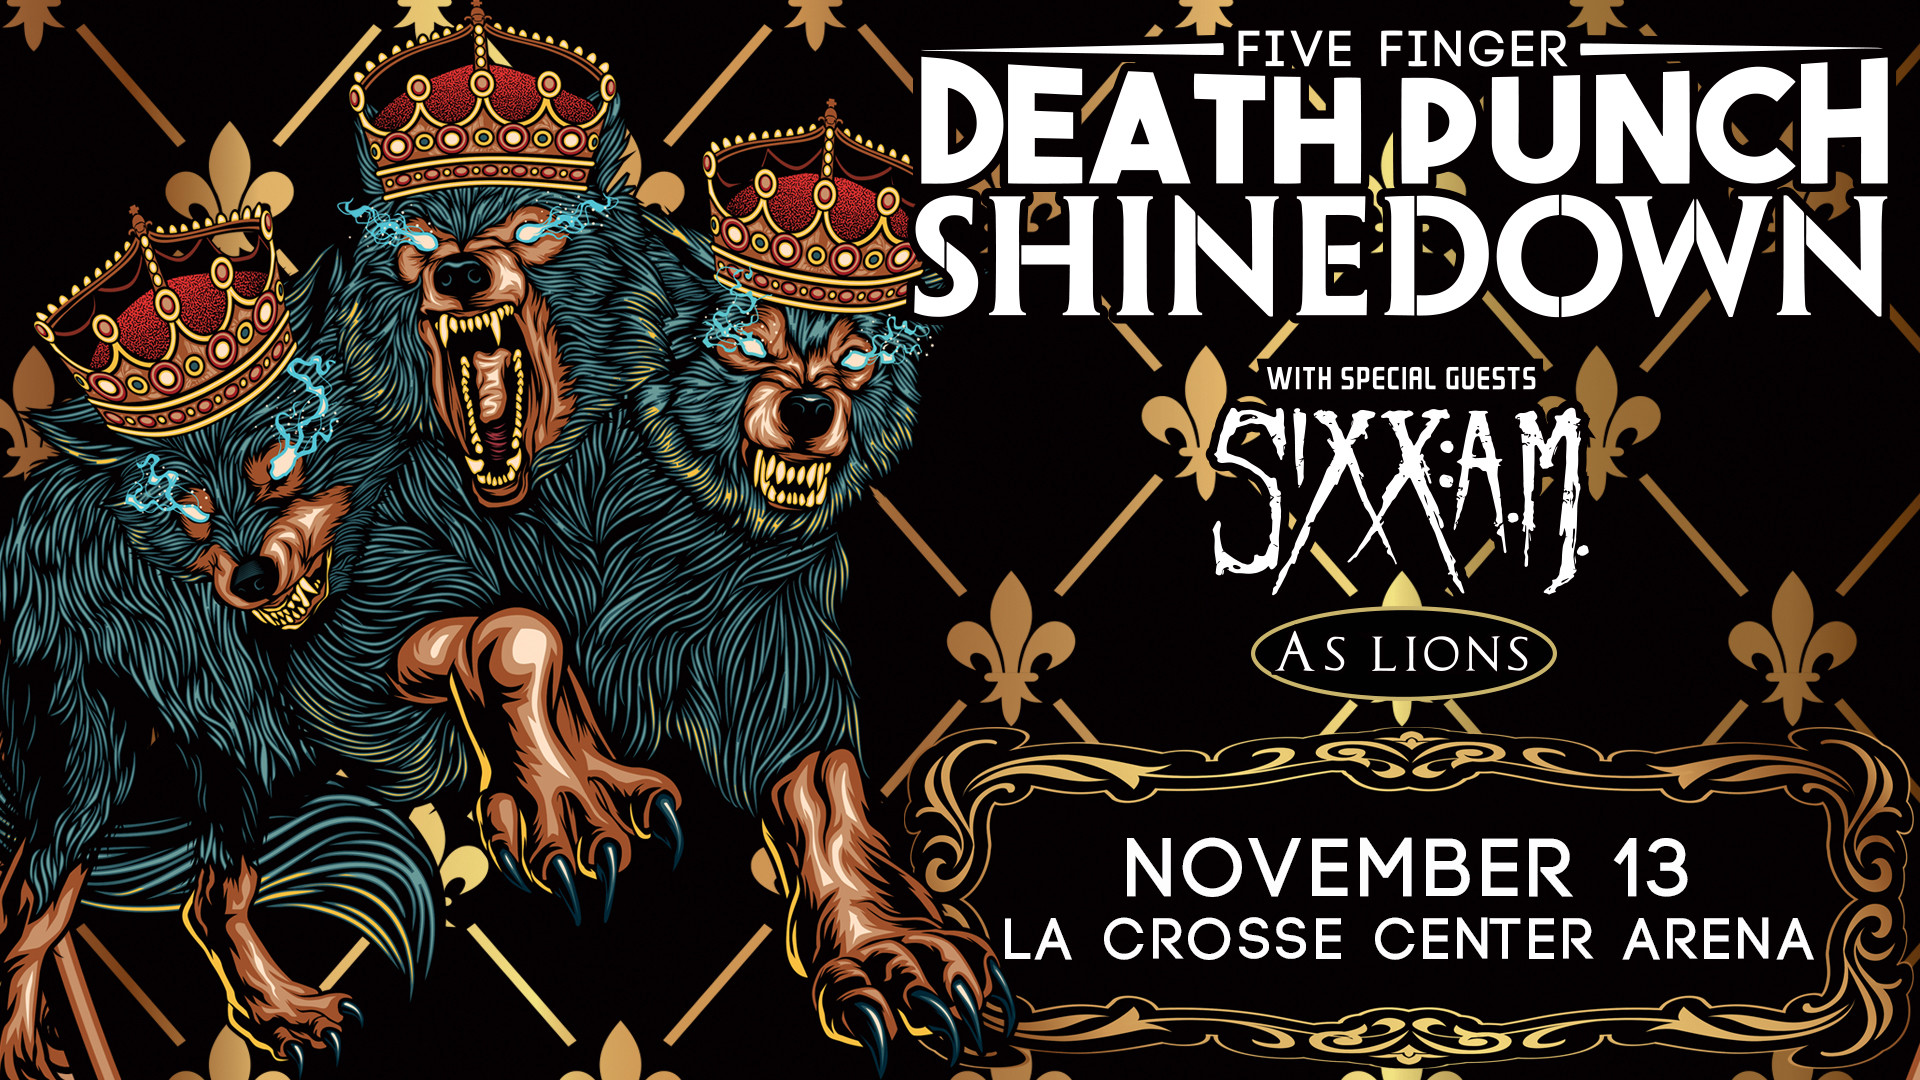 1920x1080 The loudest tour of Fall 2016: Five Finger Death Punch, Shinedown, Sixx AM,  and As Lions take over the La Crosse Center on Sunday, November 13th.